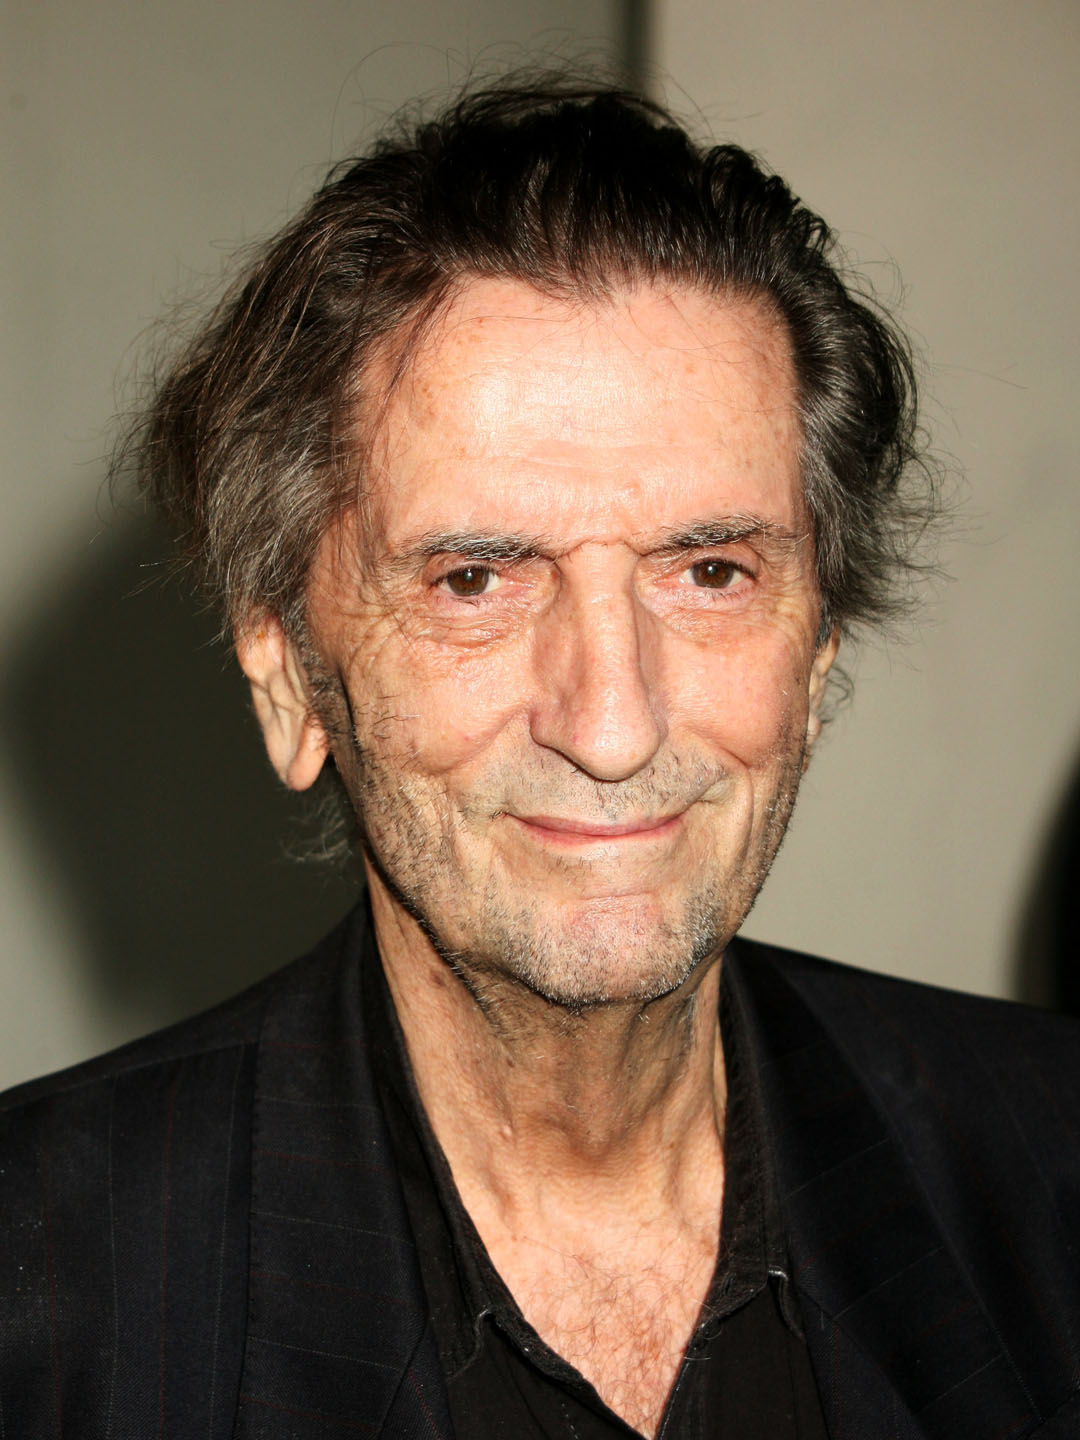 How tall is Harry Dean Stanton?